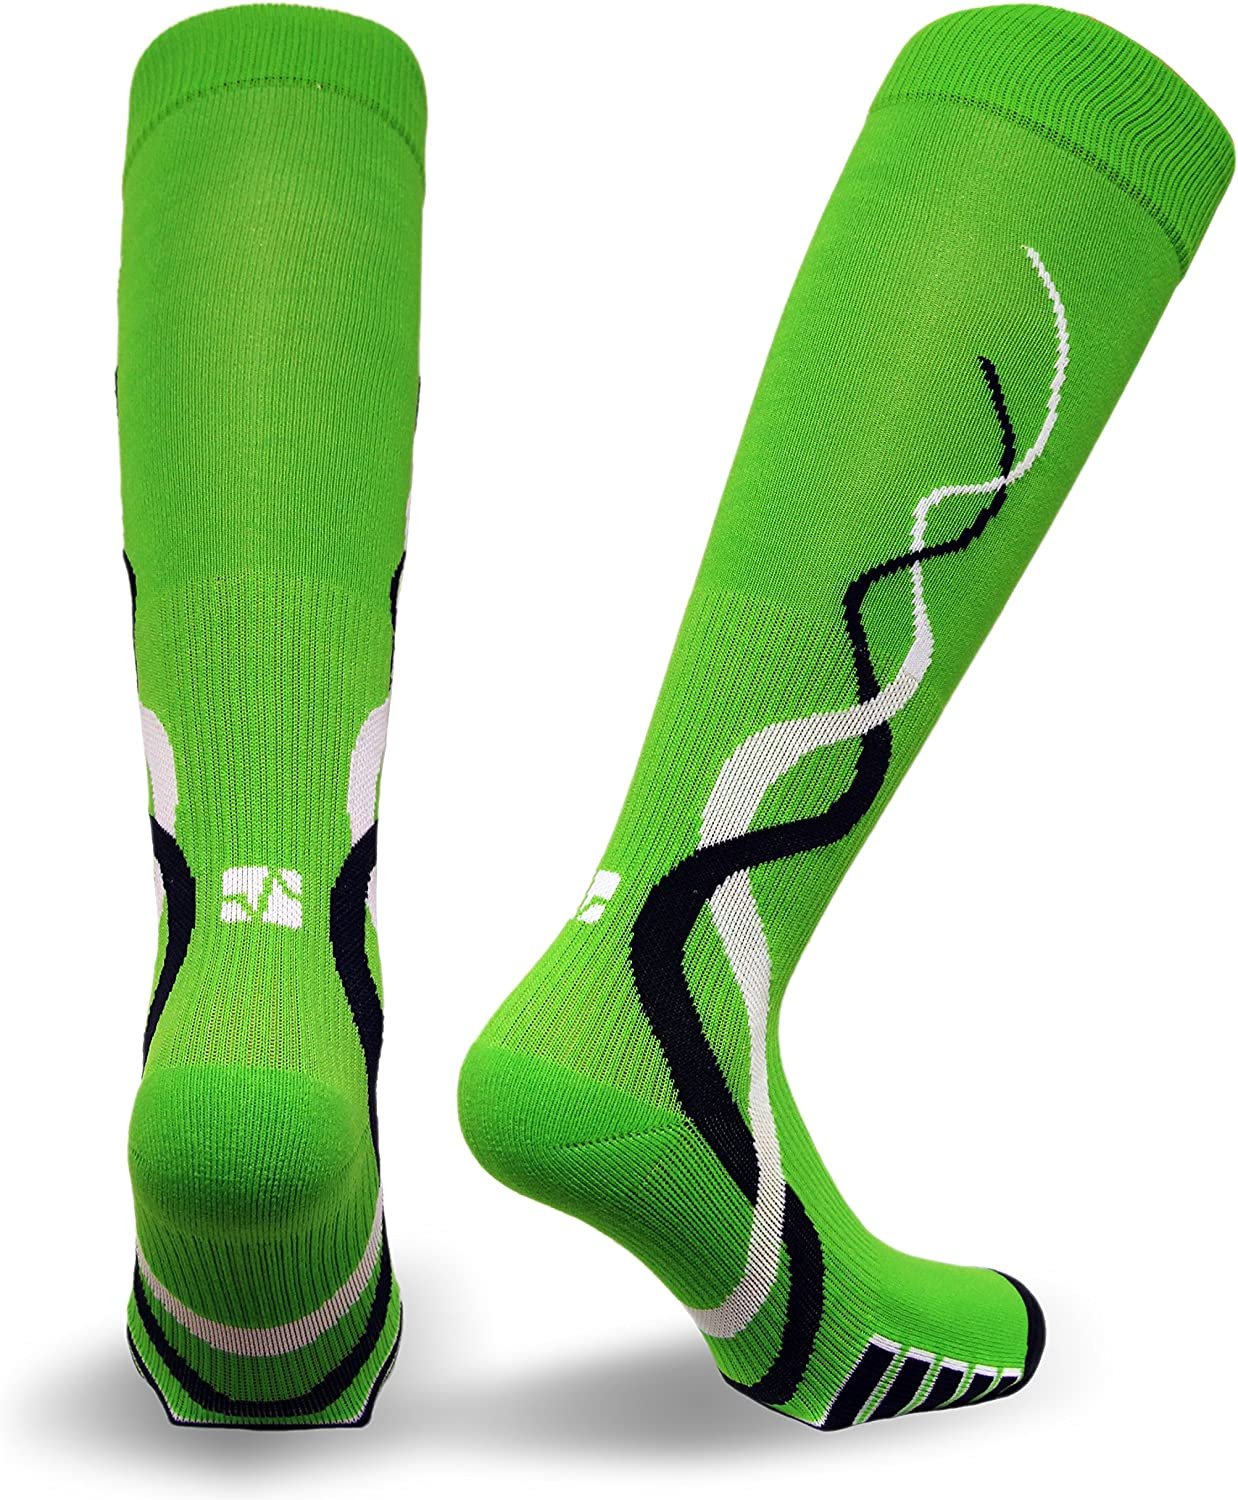 Vitalsox VTW0316 Race Day, Ladies Patented Graduated Compression Odor Resistant Running, Training, Recovery Socks (1 pair Women's), Small, Green